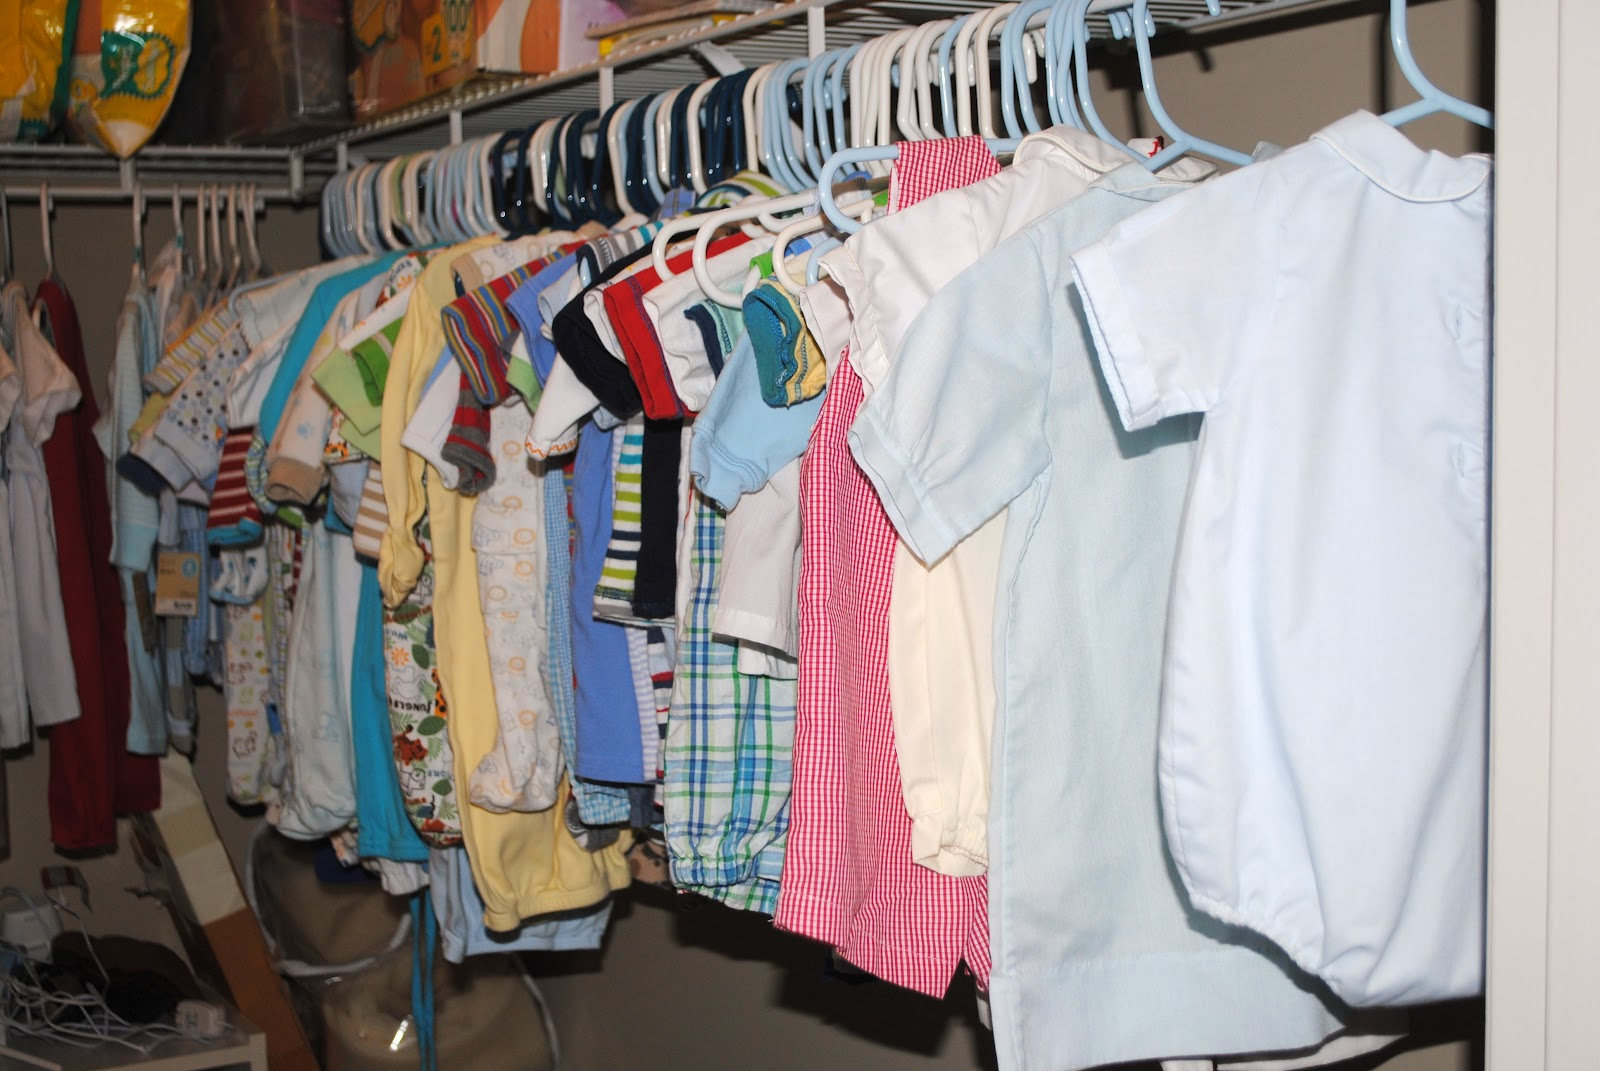 Griffinu0027s Closet Is Insane. This Baby Boy Has SO Many Clothes! My Cousin  Let Me Borrow A Ton Of Her Newborn Things U0026 I Am Very Curious To See If  Griffin ...